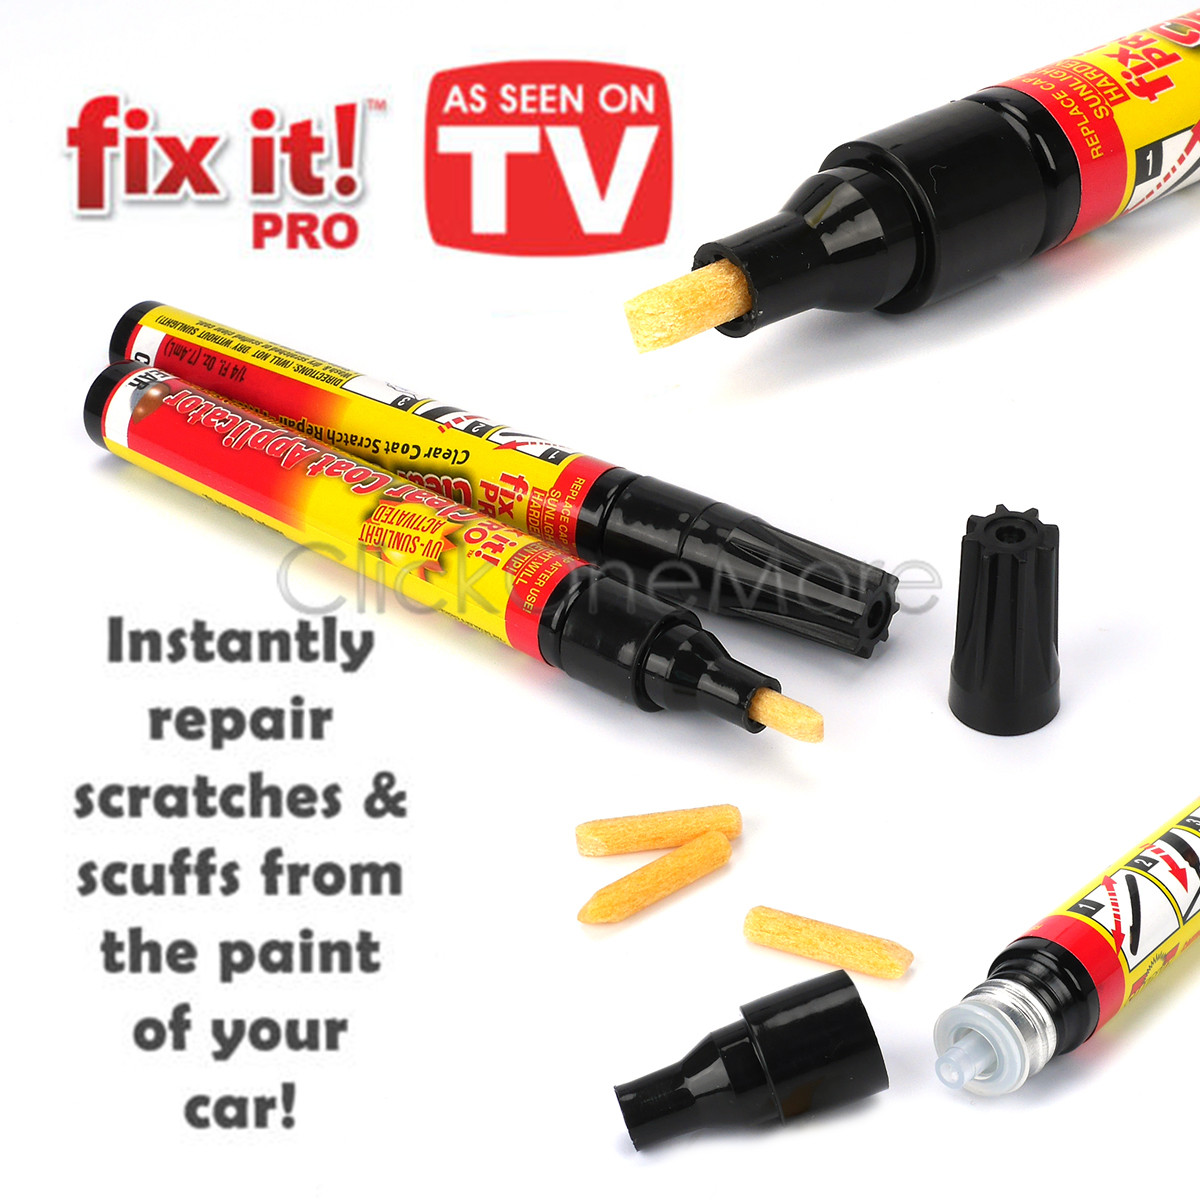 2 x fix it pro clear coat car paint scratch remover painting repair pen tool oz ebay. Black Bedroom Furniture Sets. Home Design Ideas